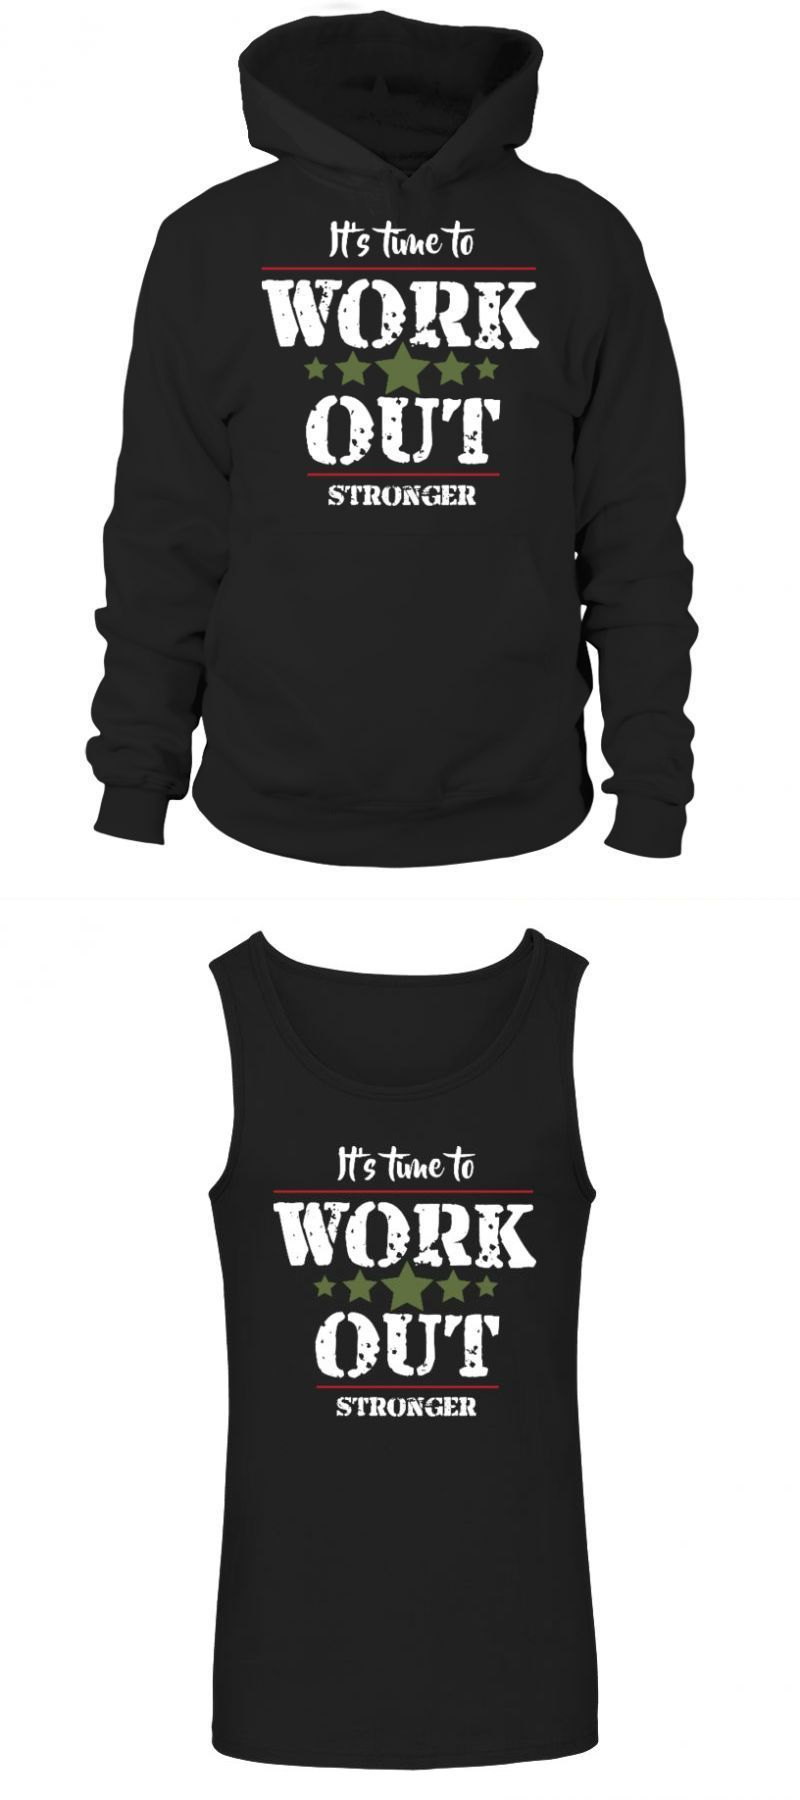 cc84369f5 Rogue fitness t shirt uk work out ita t-shirt fitness slogans #rogue # fitness #shirt #uk #work #out #ita #t-shirt #slogans #best #hoodie #unisex  #tanktop